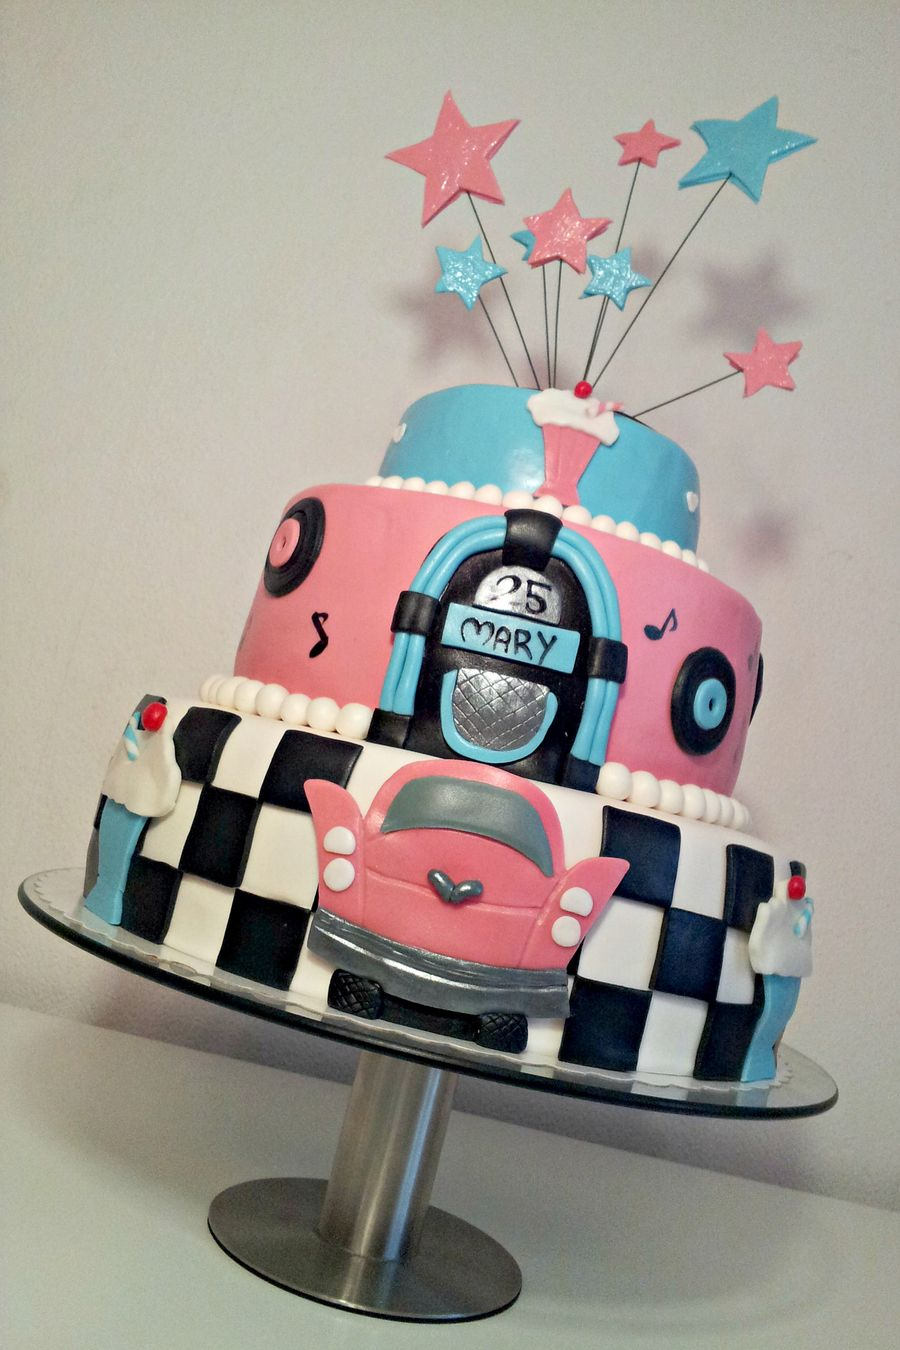 50 S Theme Cake With Images Themed Cakes 50s Theme Parties